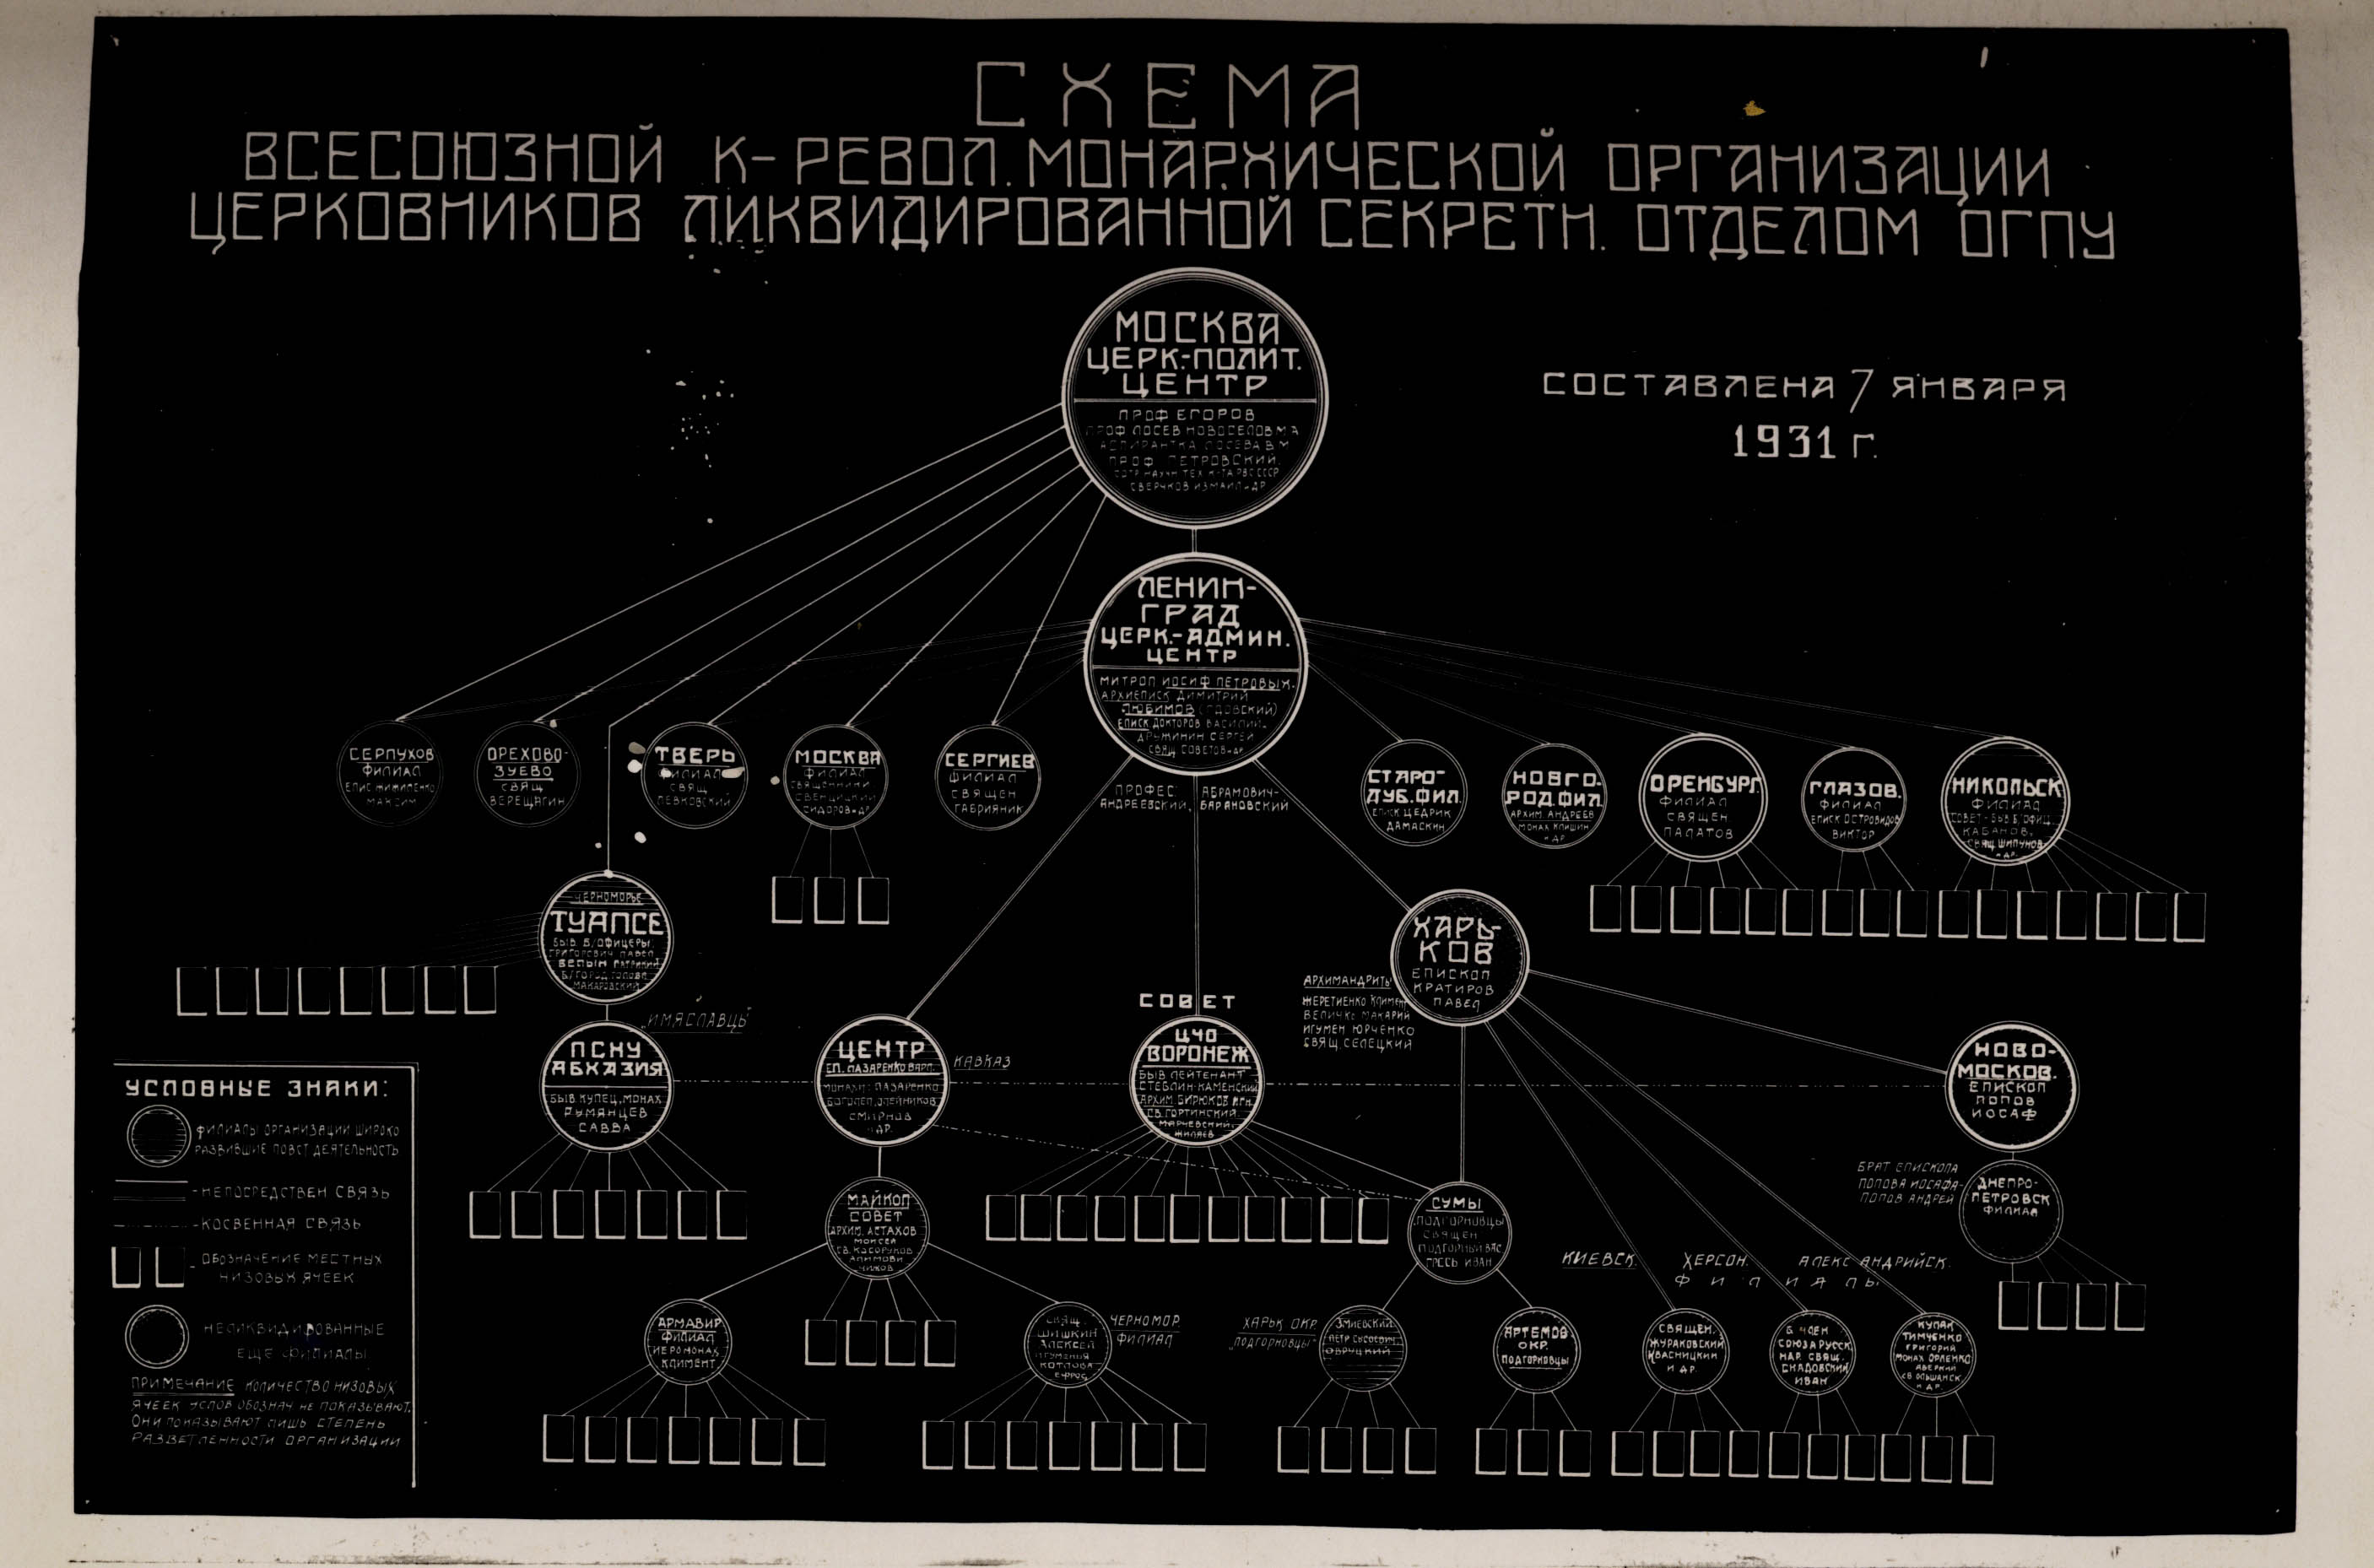 TRUE ORTHODOX CHURCH SECRET POLICE NETWORK SCHEME UKRAINE, 1931. GRAPHIC REPRESENTATION OF A RELIGIOUS UNDERGROUND NETWORK